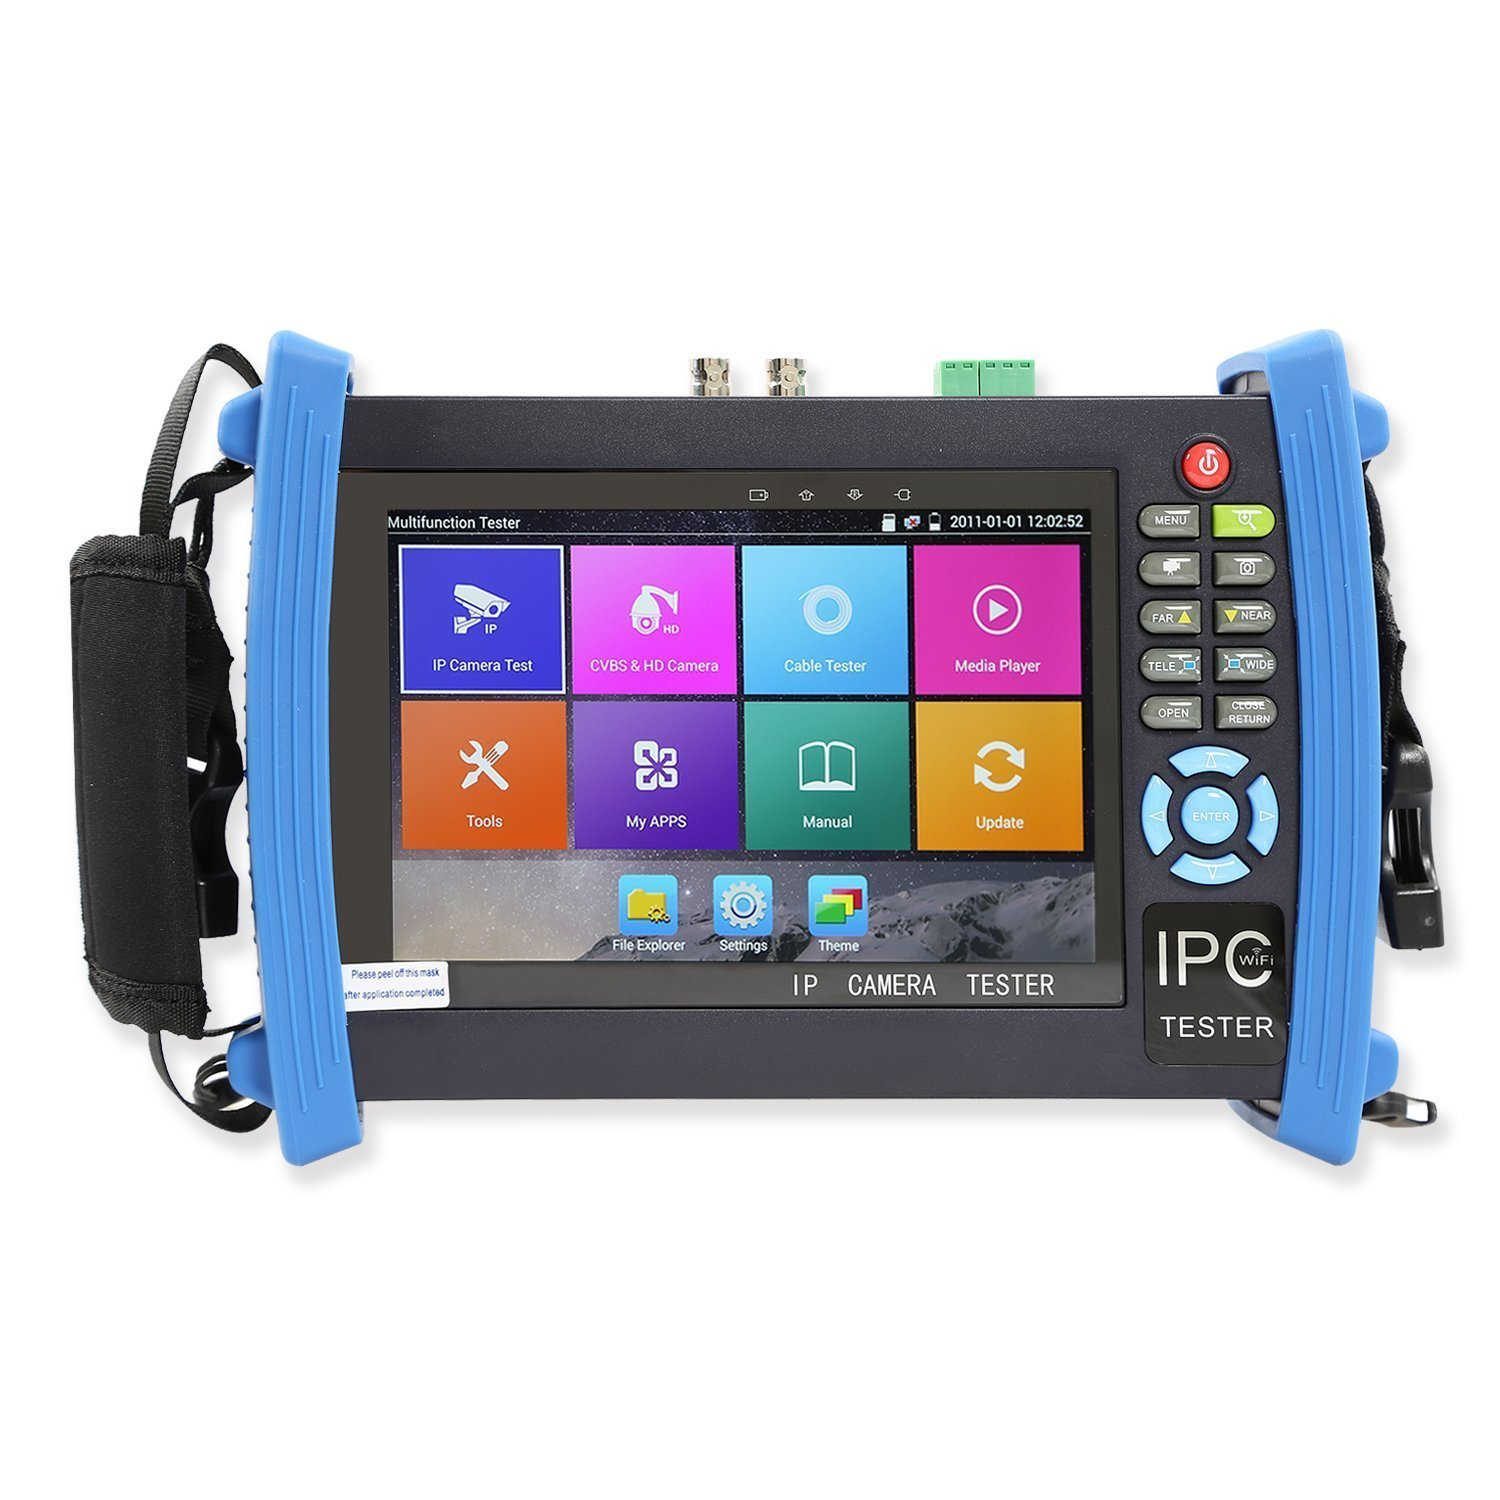 Wsdcam 7 Inch 1080P Retina Display IP Camera Tester CCTV Tester Analog Tester with POE/IP Discovery/Rapid ONVIF/WIFI/8G TF Card/4K H.265/HDMI in&Out/RJ45-TDR/Firmware Update Upgraded 8600-Plus by wsdcam